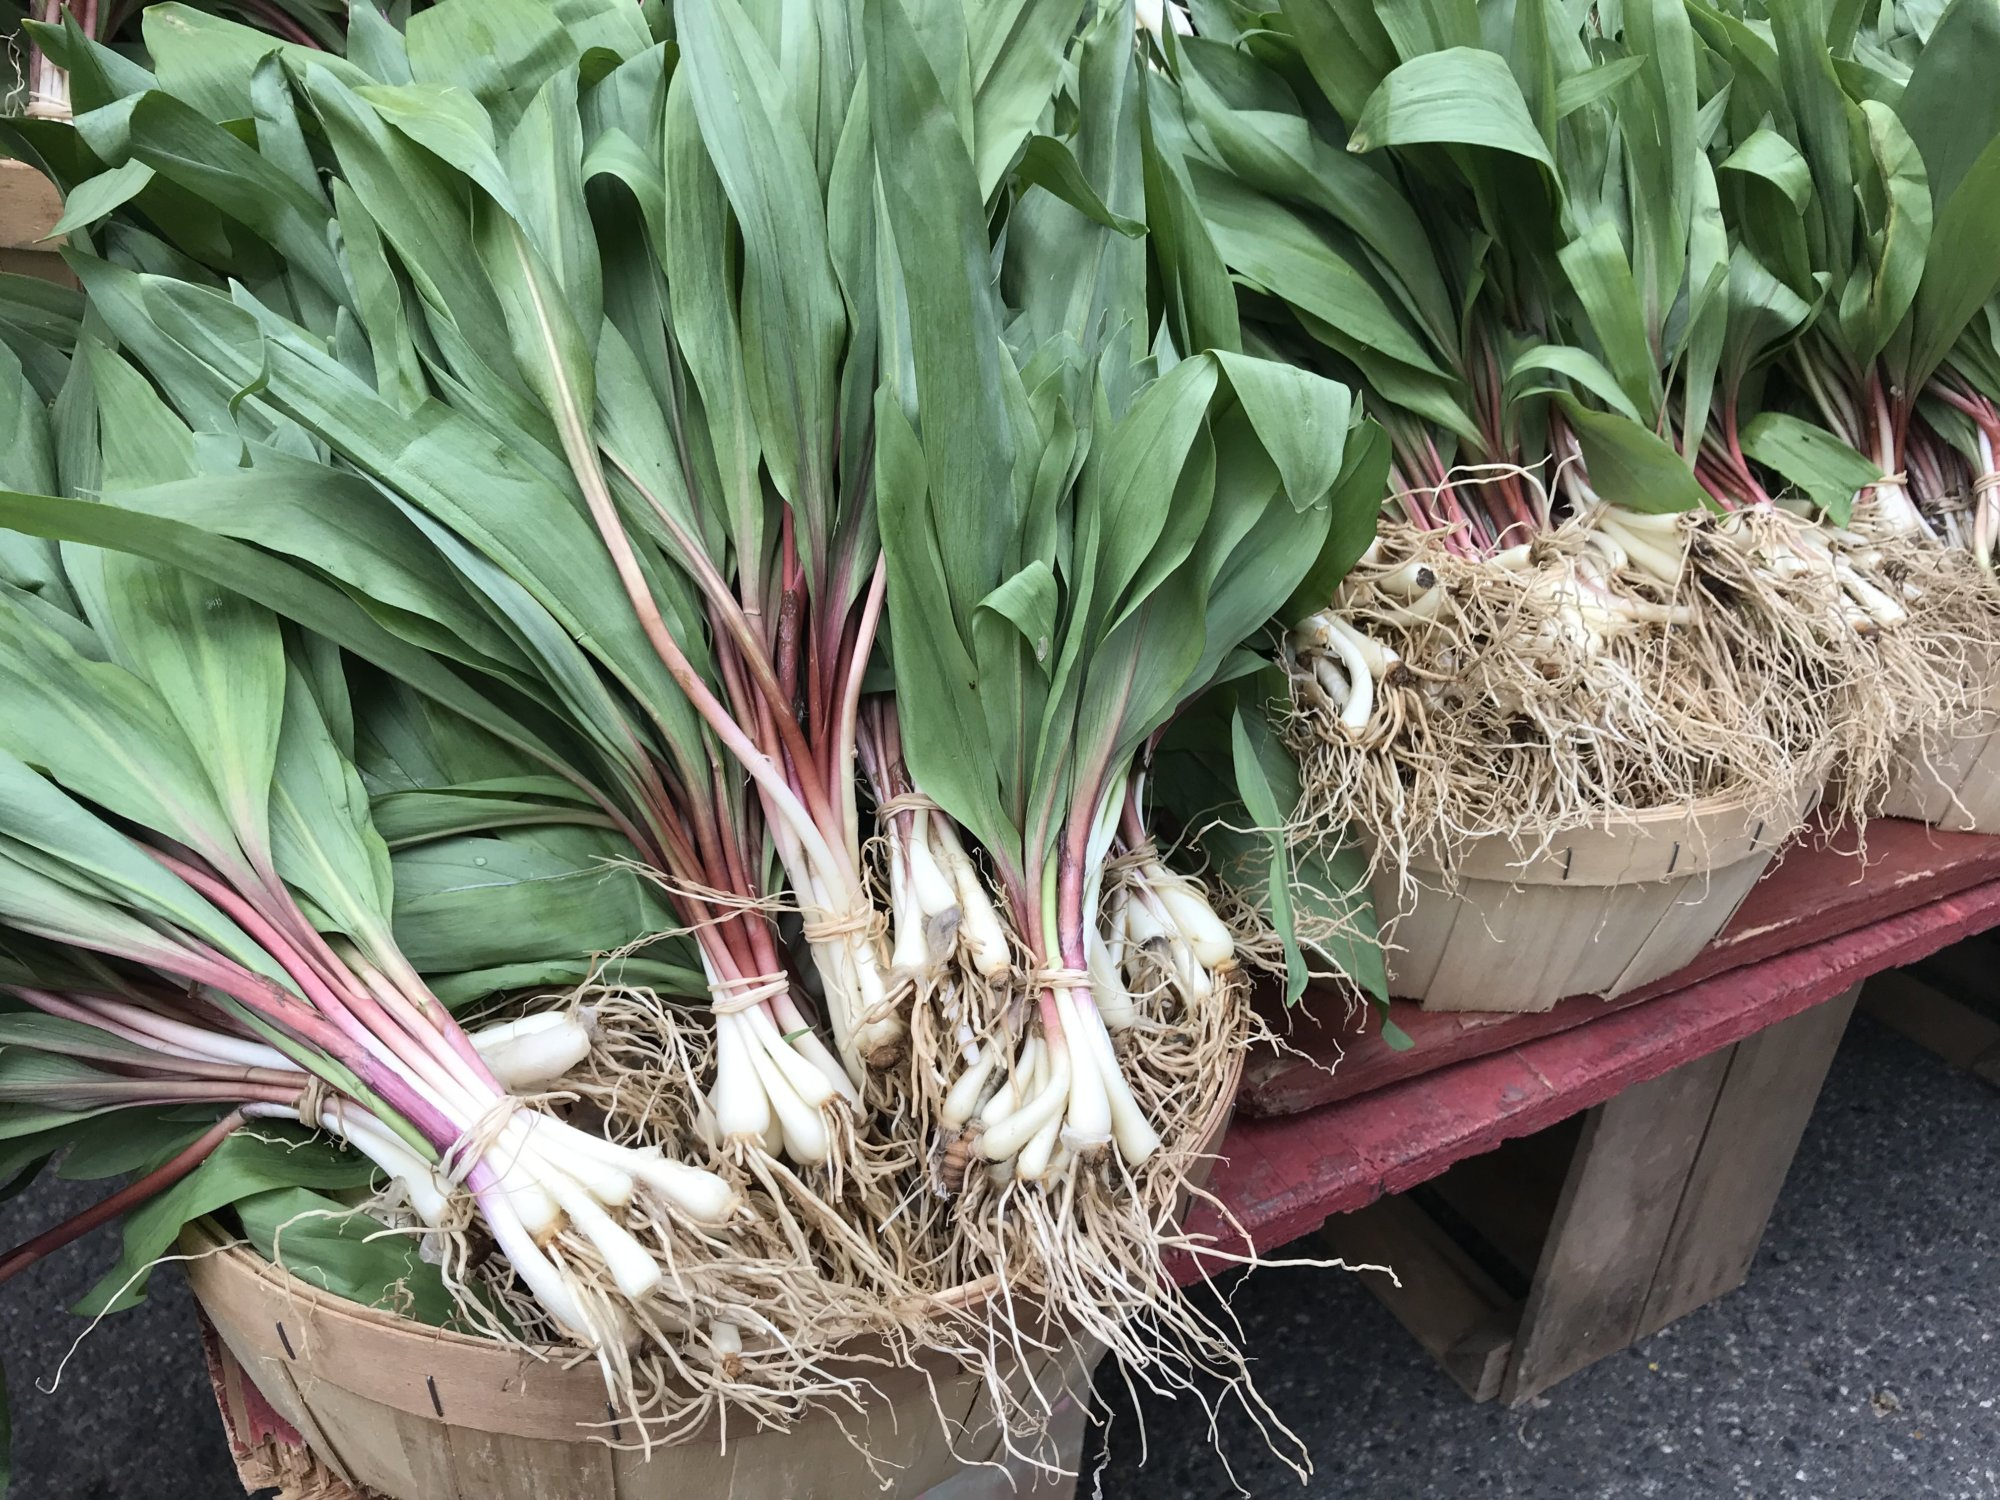 Ramps, radishes, rapini: What to make with farmers market finds